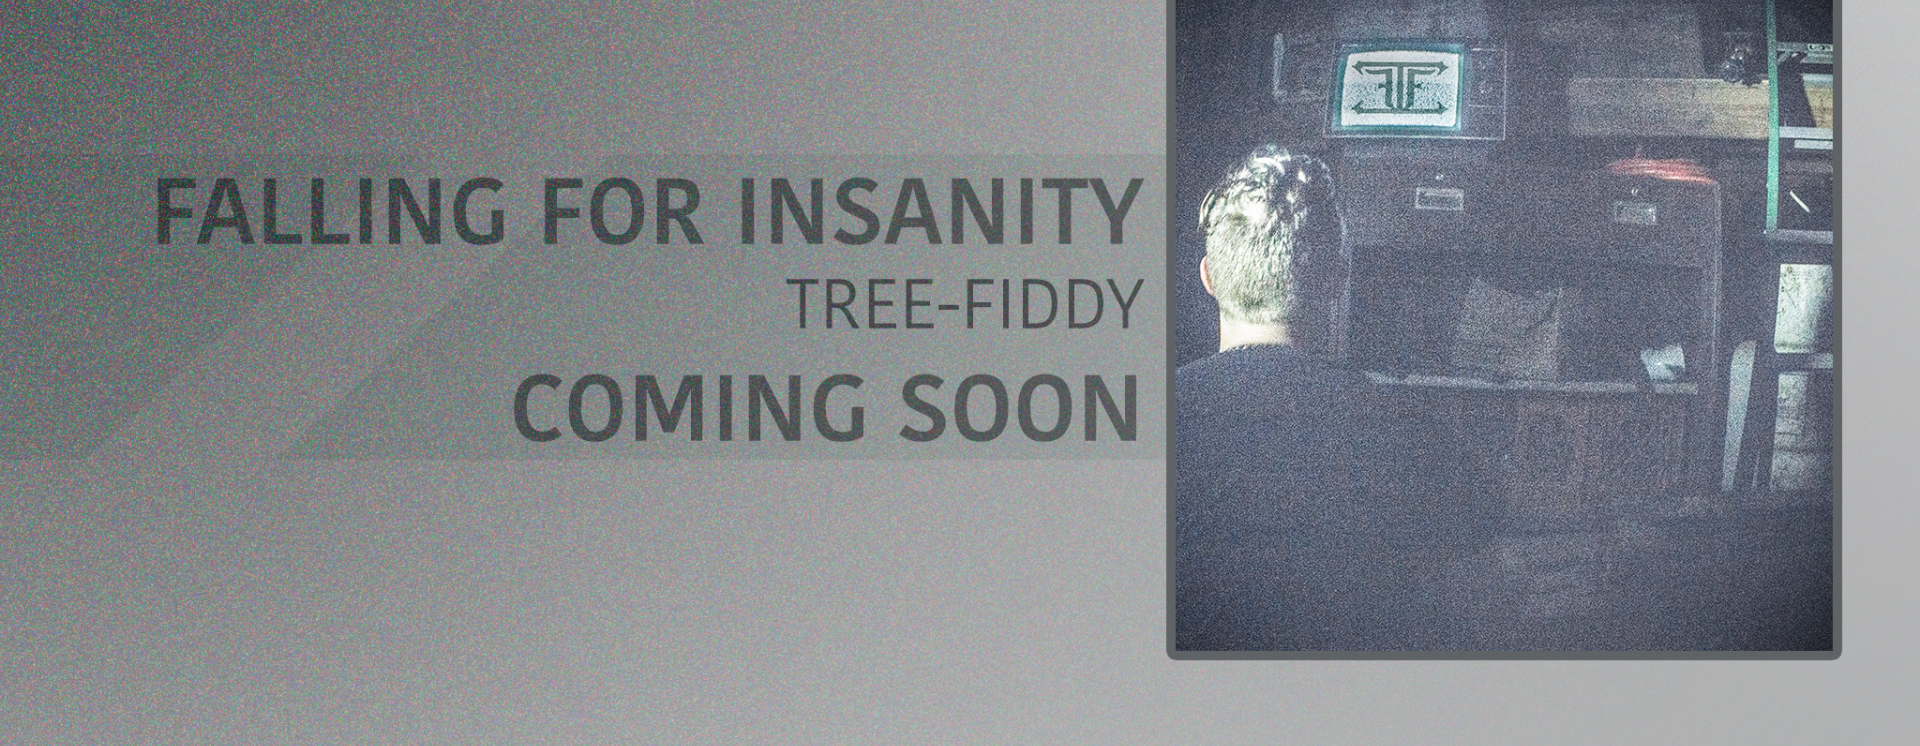 Fbcoverphoto tree fiddy coming soon copy